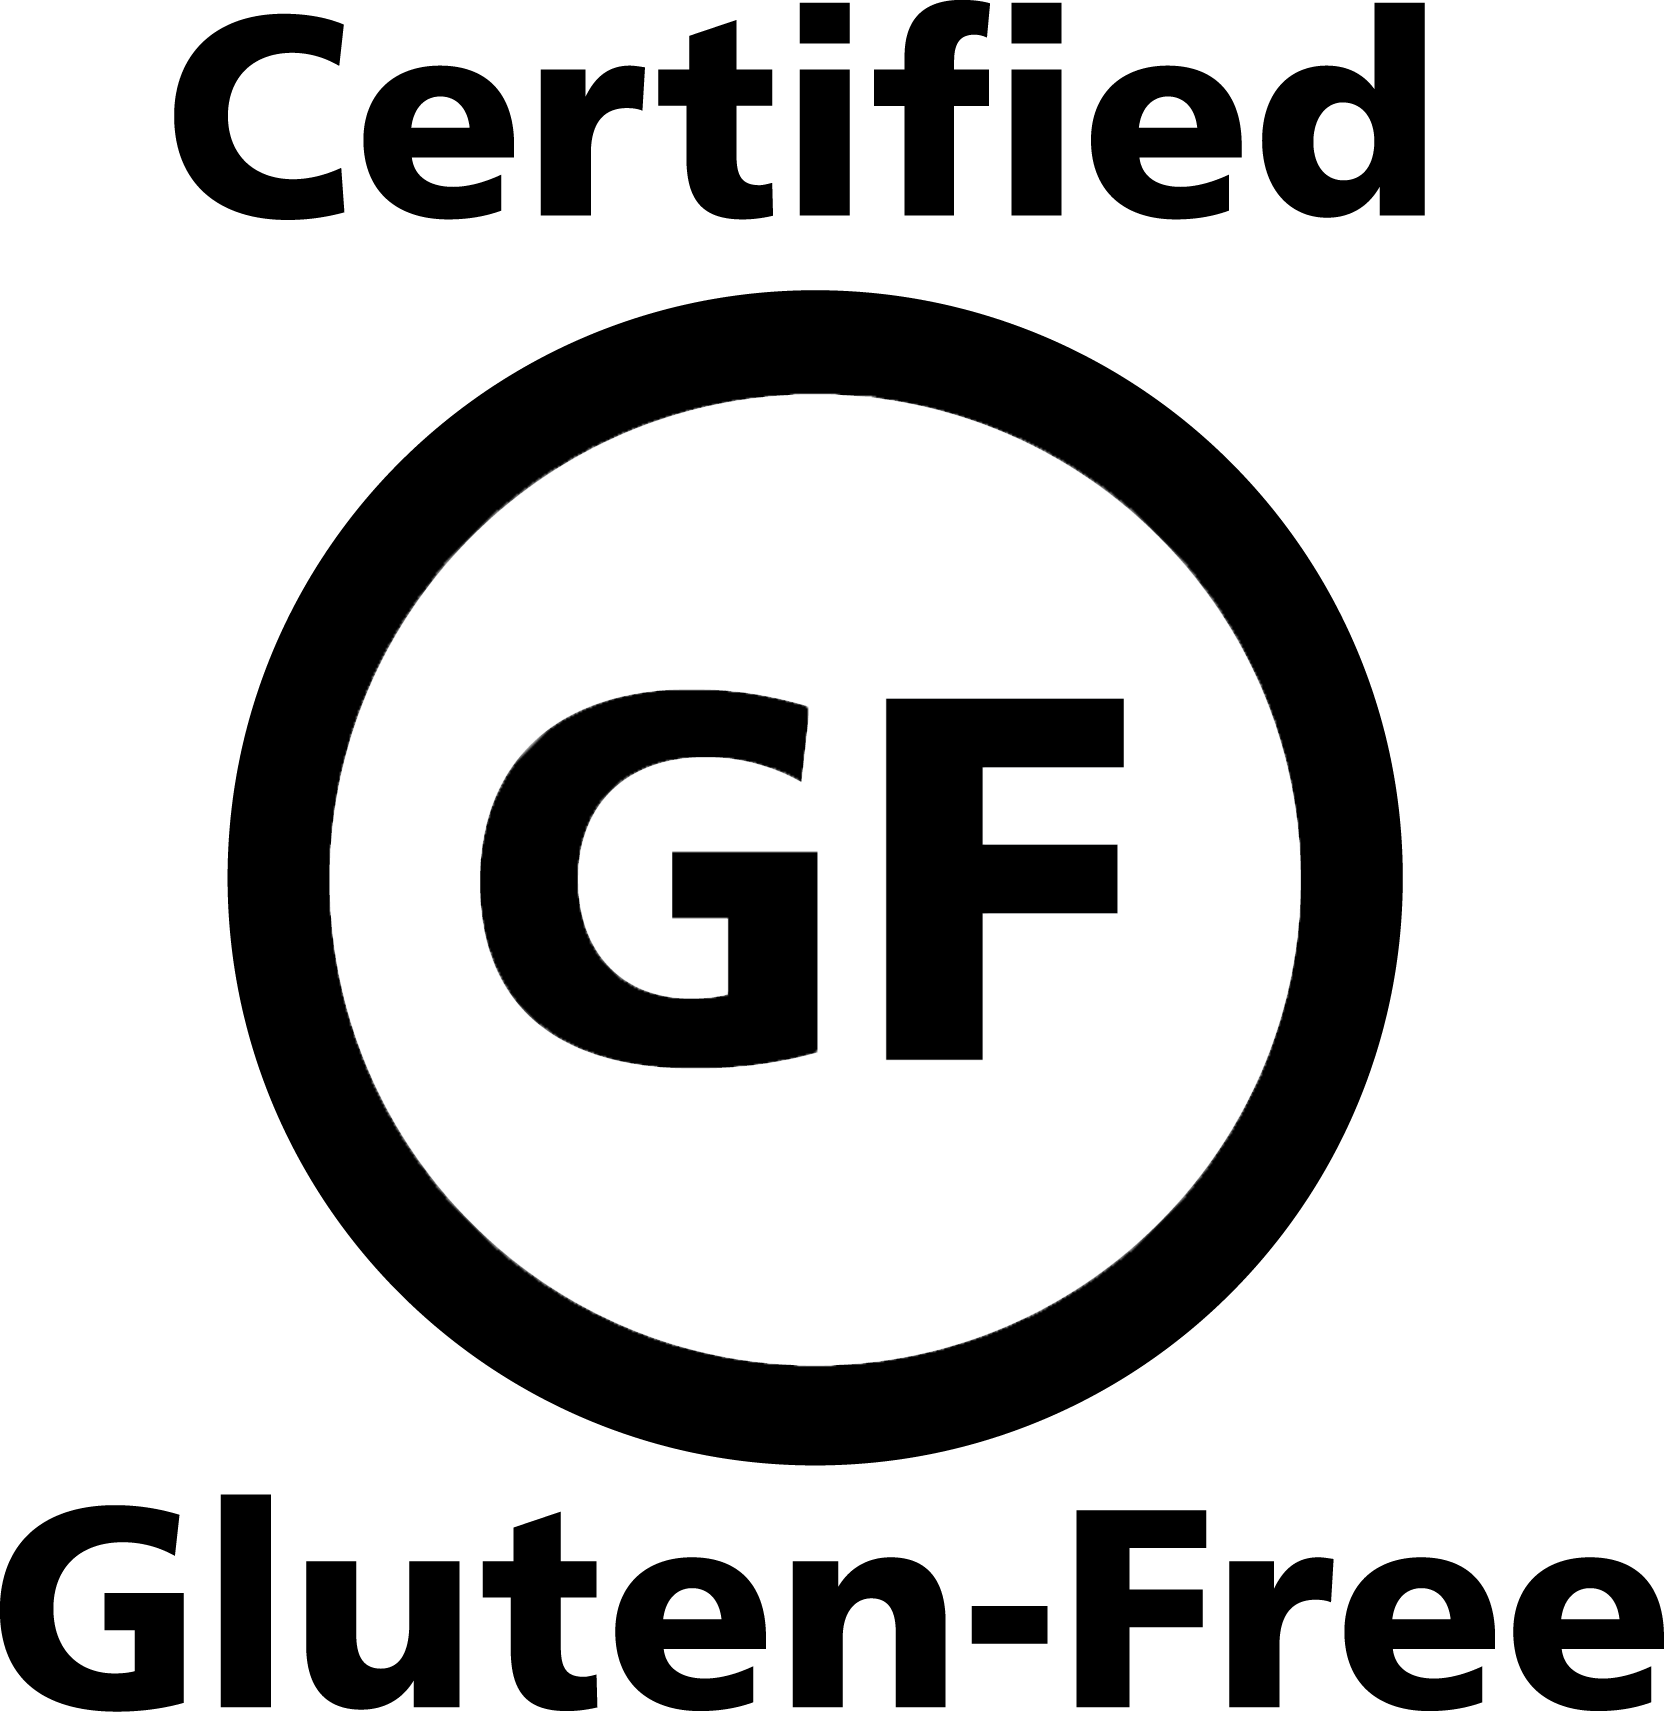 Gluten free logo png. Intolerance group gif